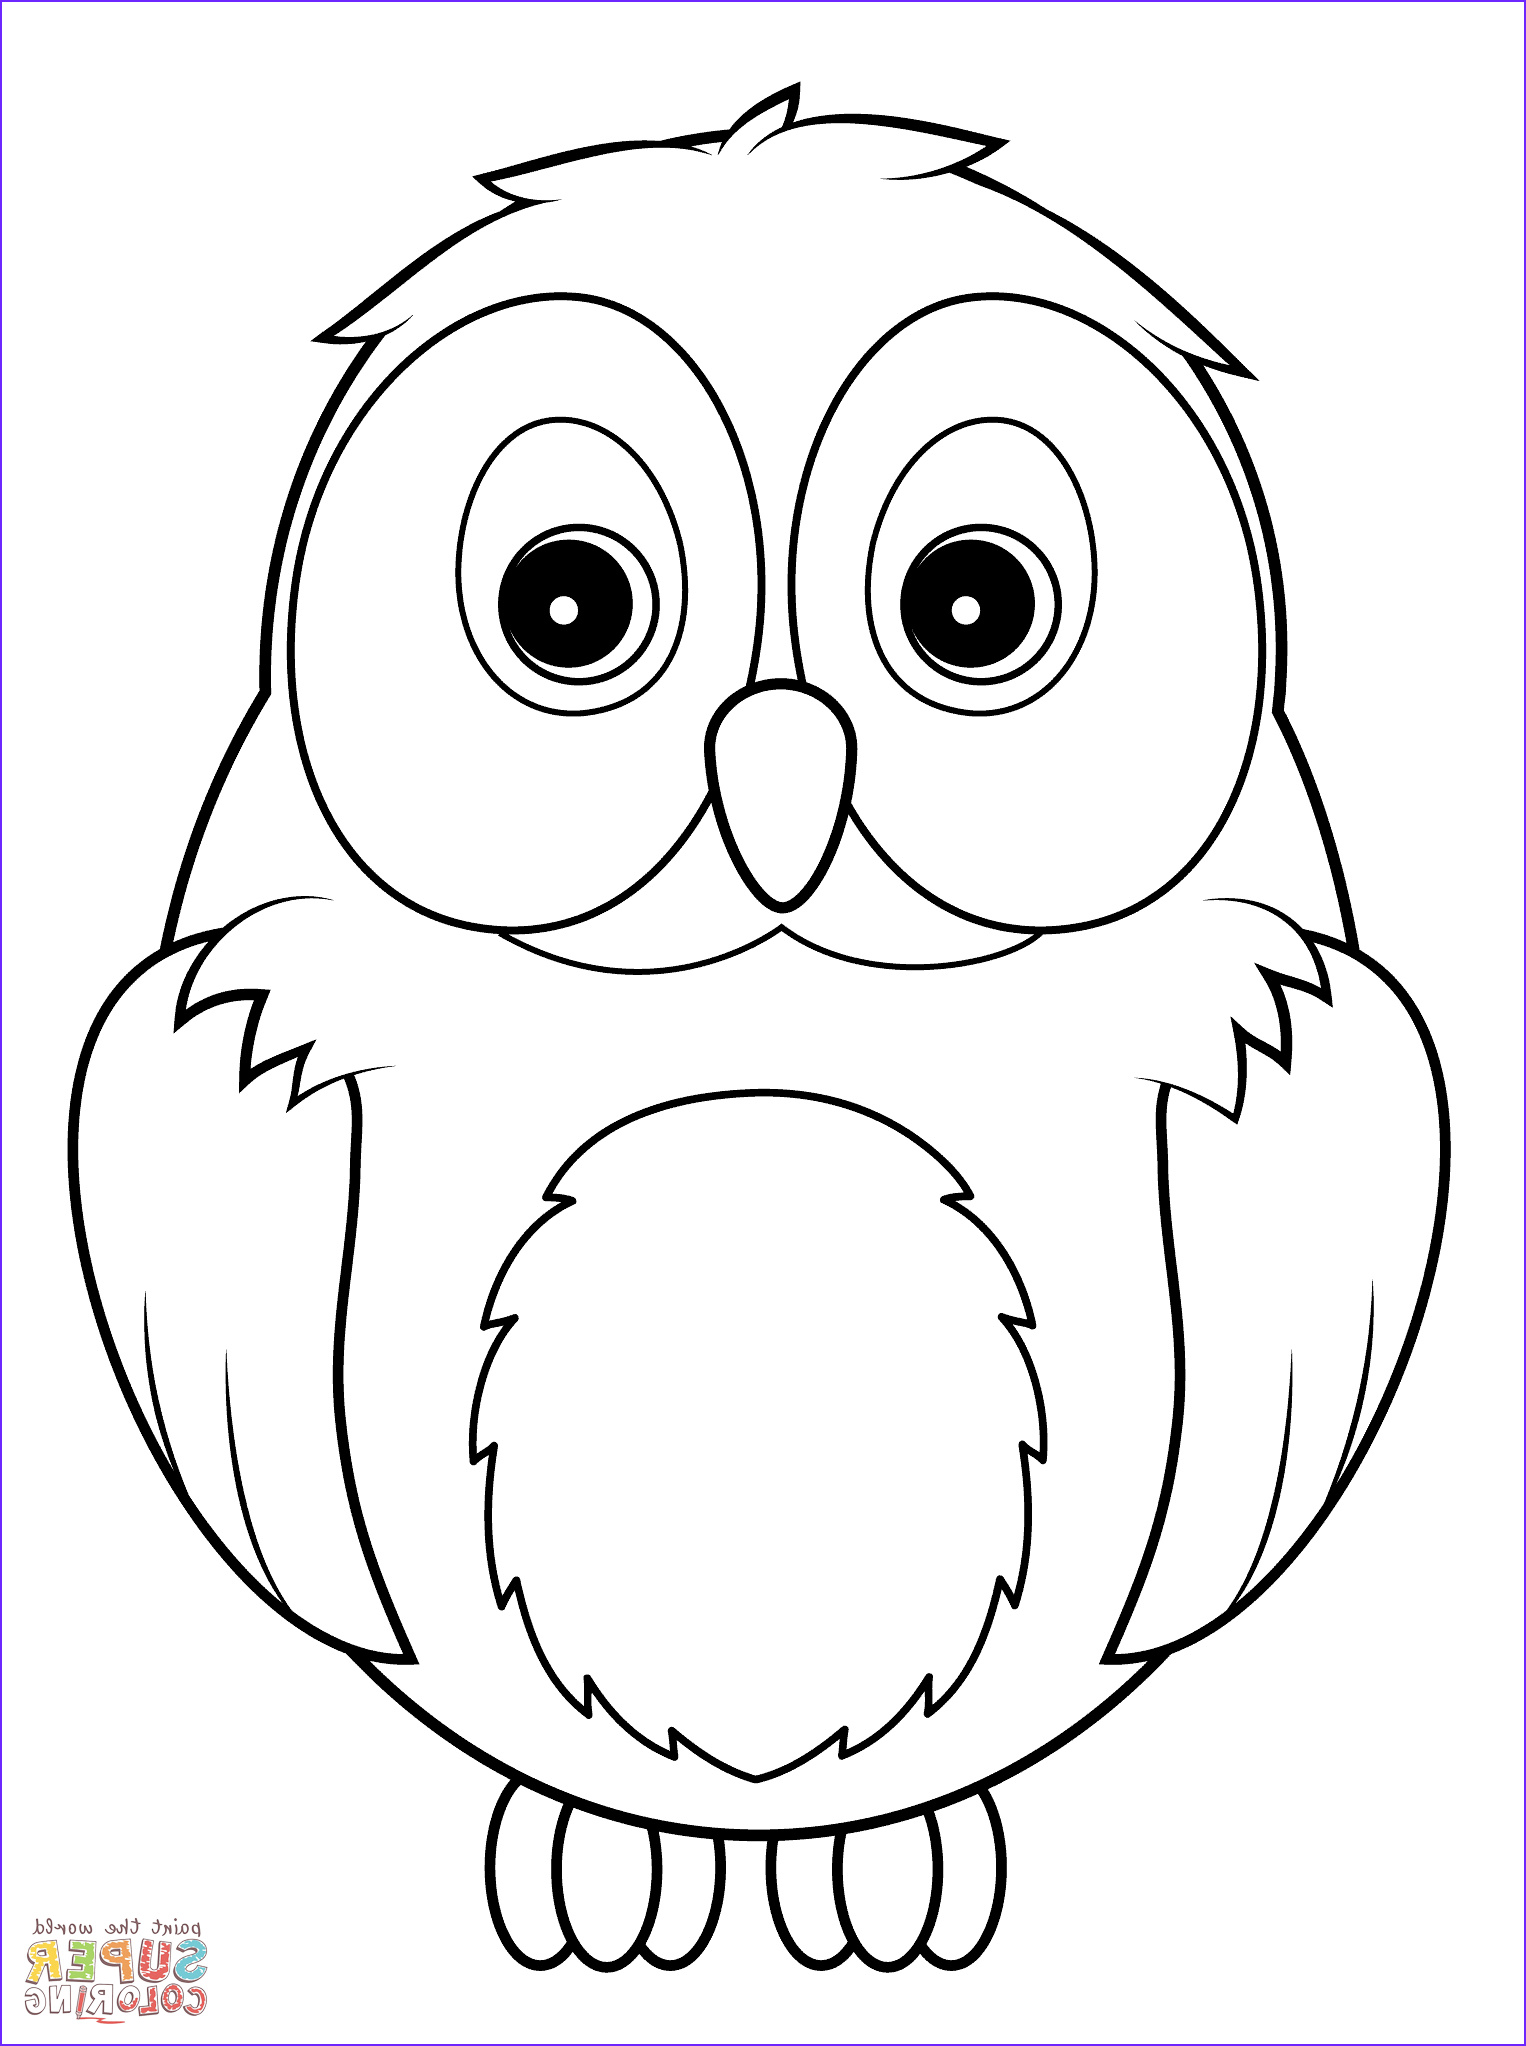 Snow Owl Coloring Page Inspirational Image How to Draw A Cute Snowy Owl for Kids Google Search